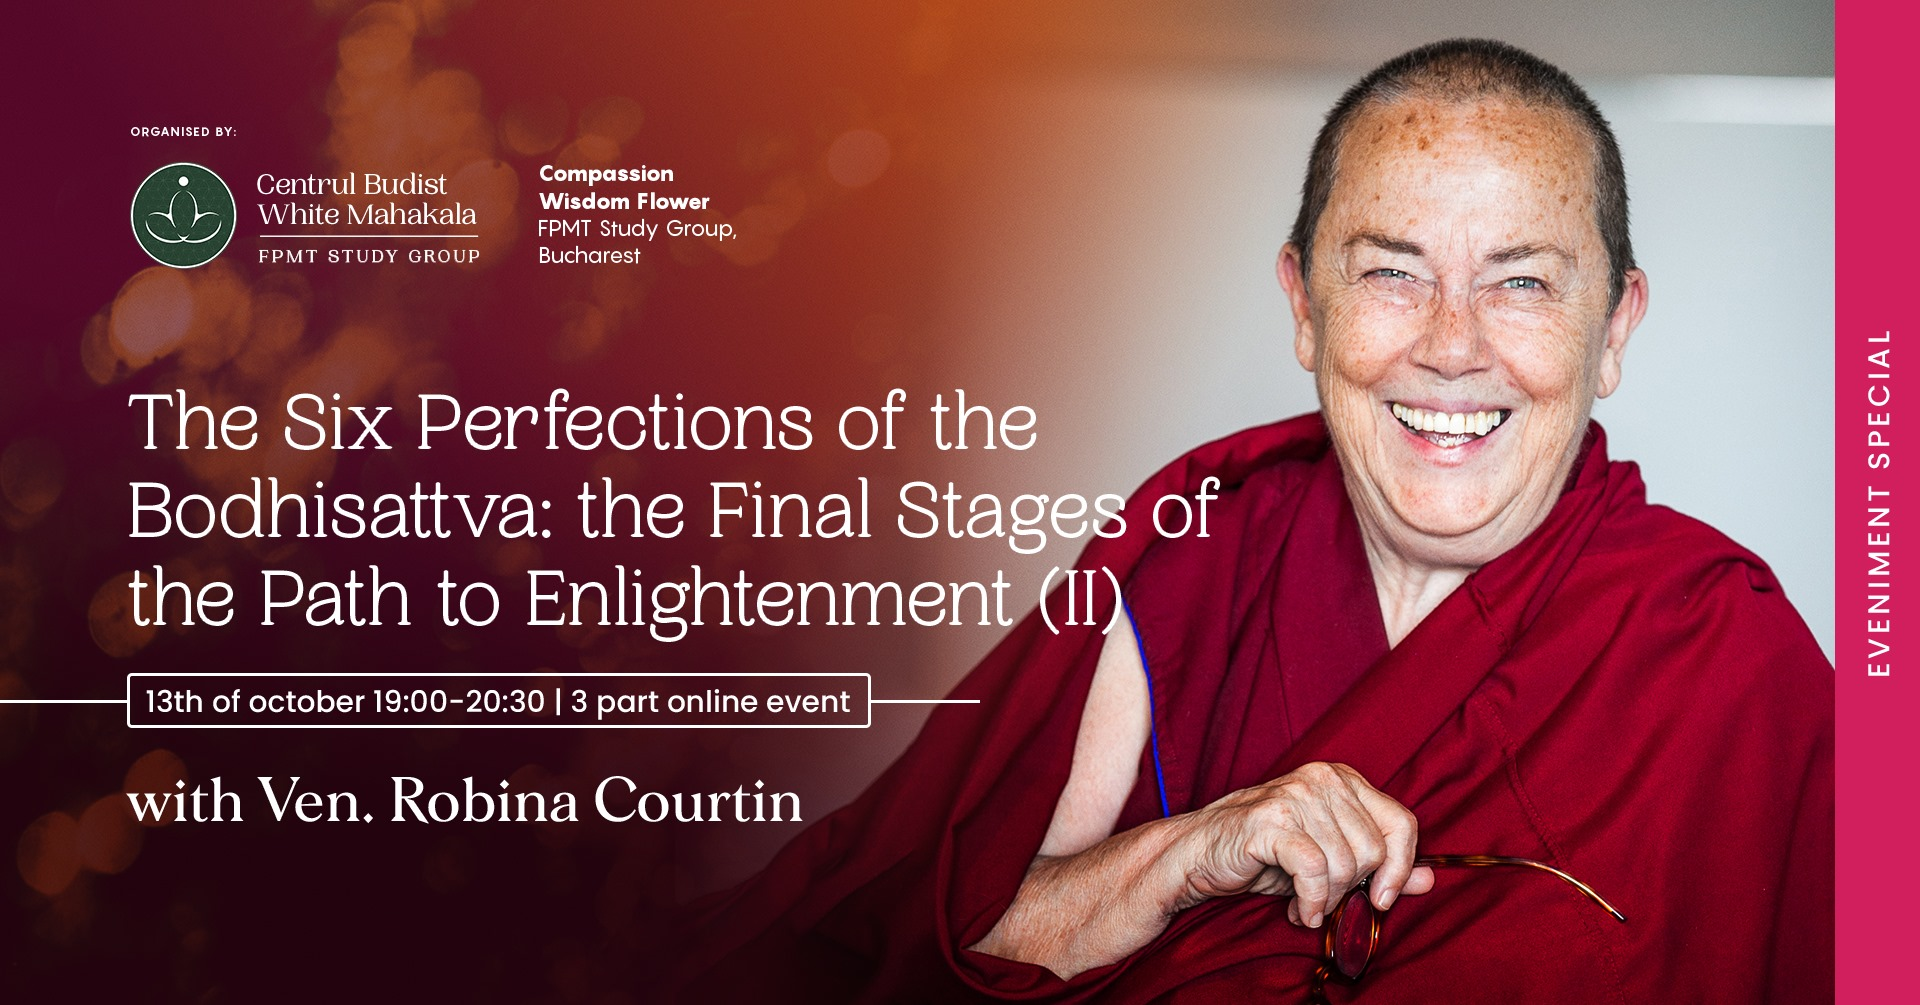 The Six Perfections of the Bodhisattva: the Final Stages of the Path to Enlightenment (II)